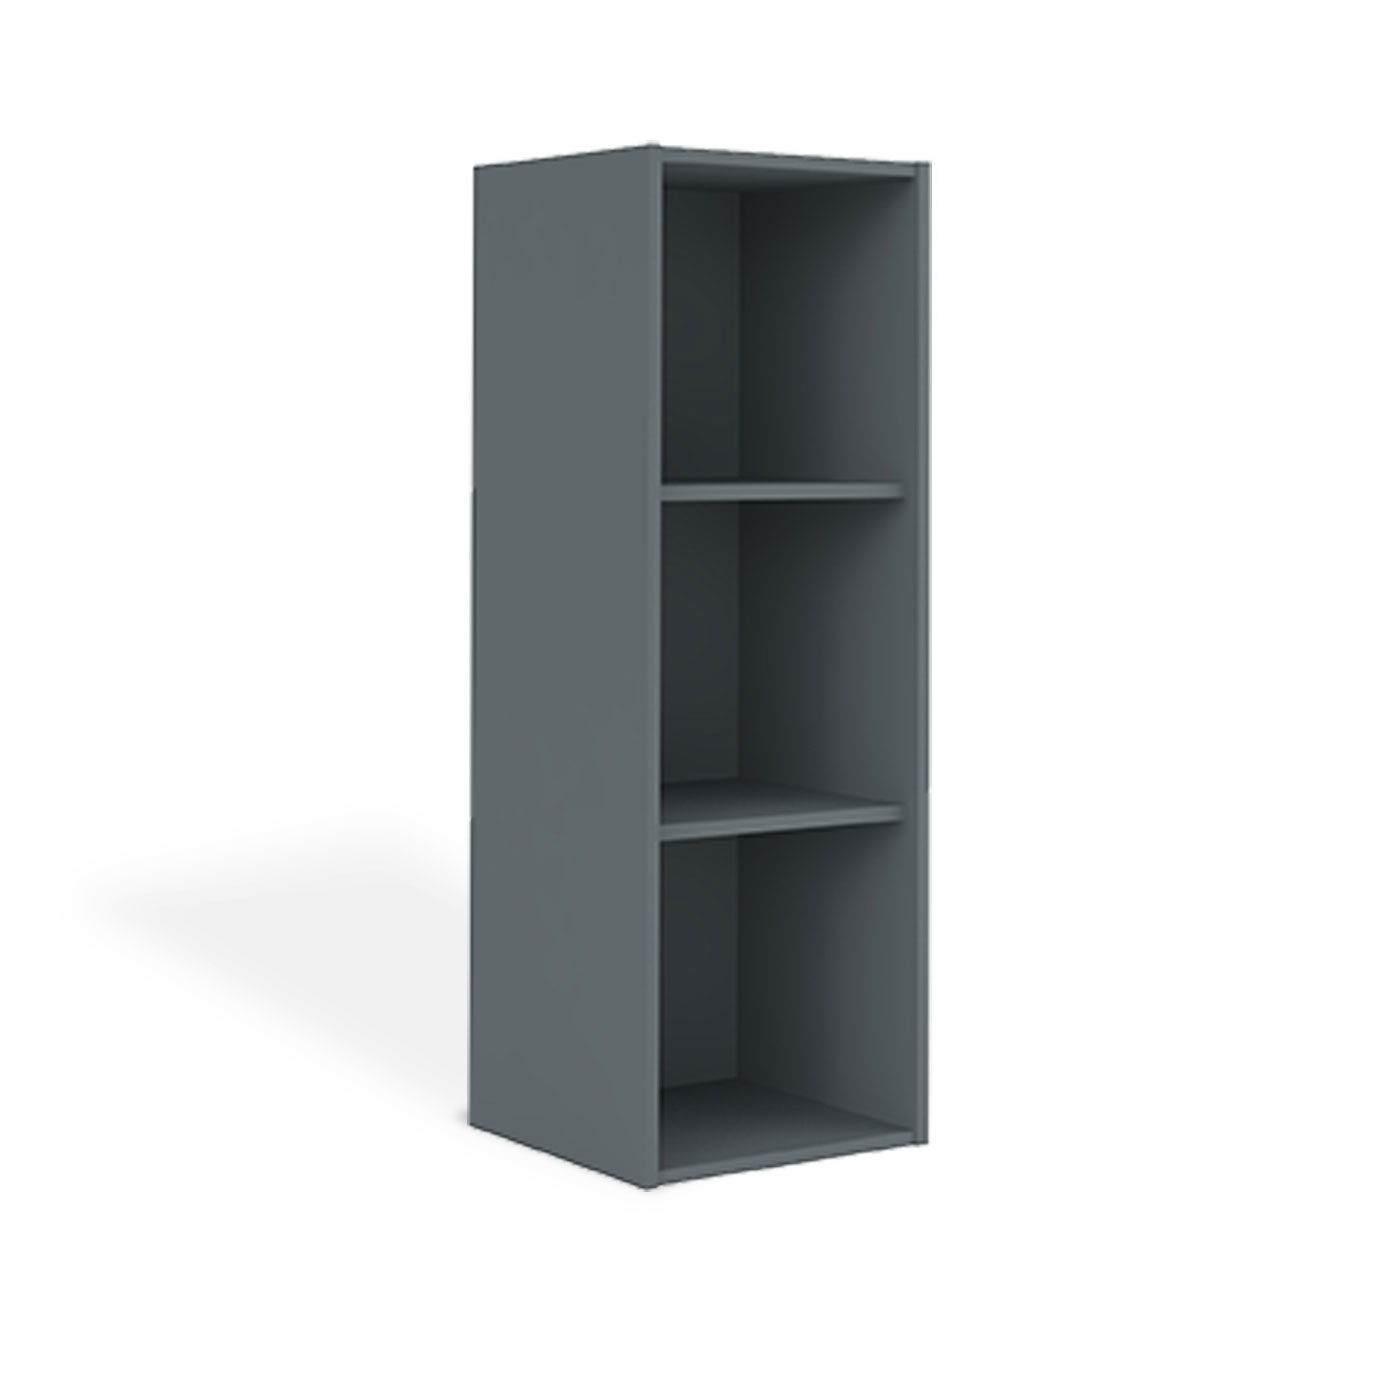 casier de rangement trois cases gris anthracite idkid 39 s. Black Bedroom Furniture Sets. Home Design Ideas